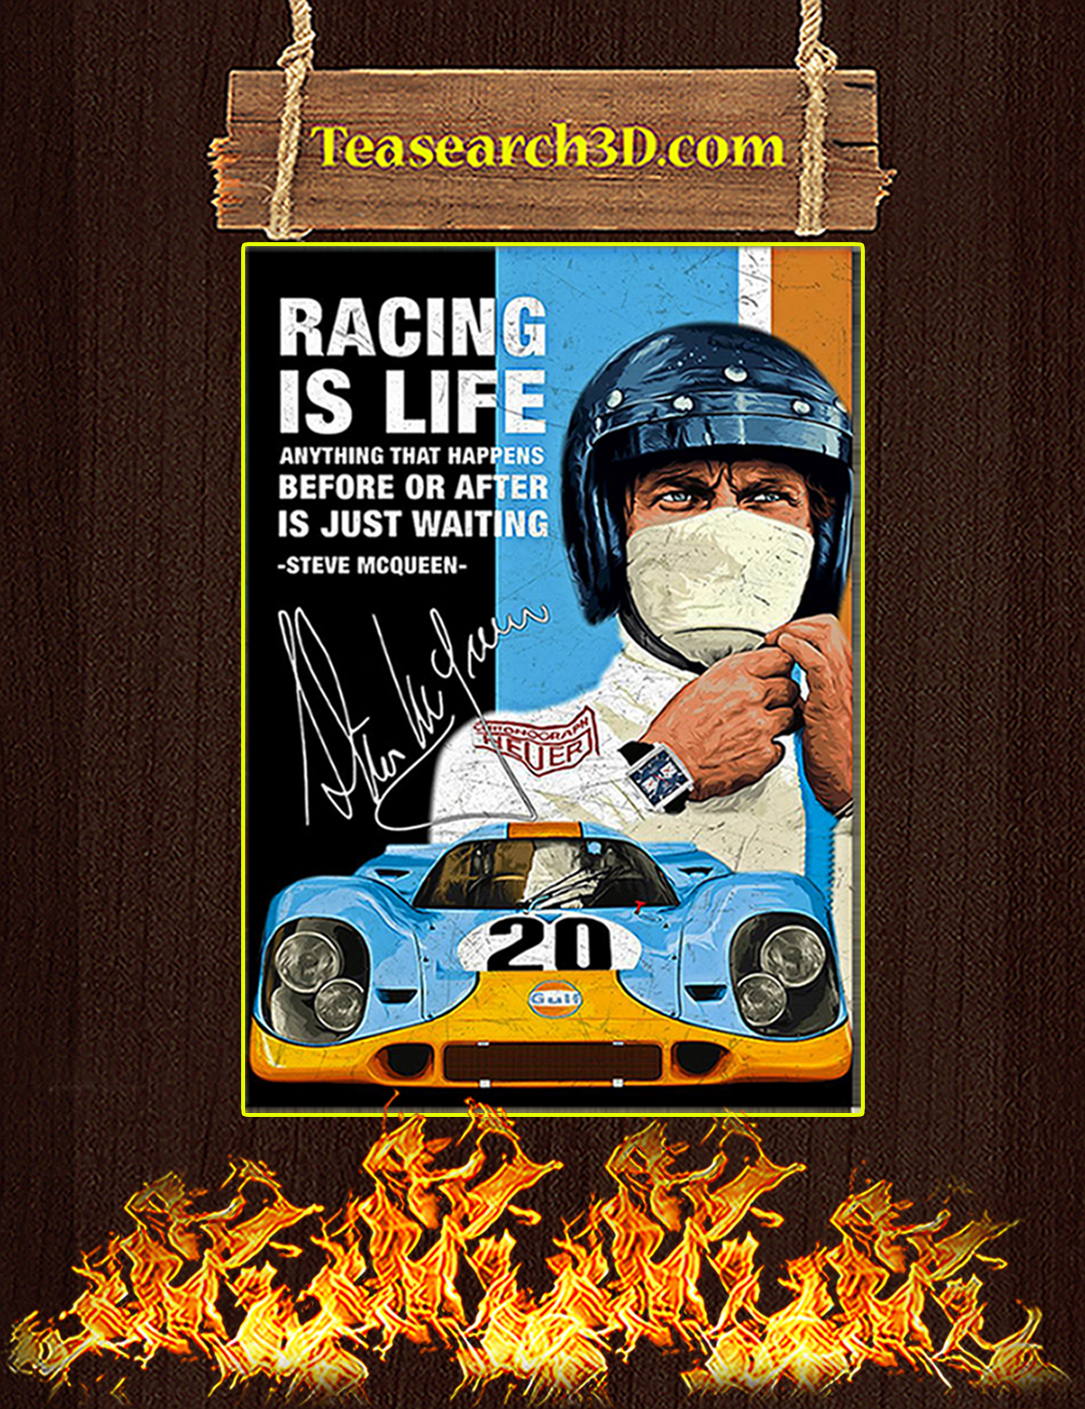 Racing Is Life Steve McQueen Signature Poster A2